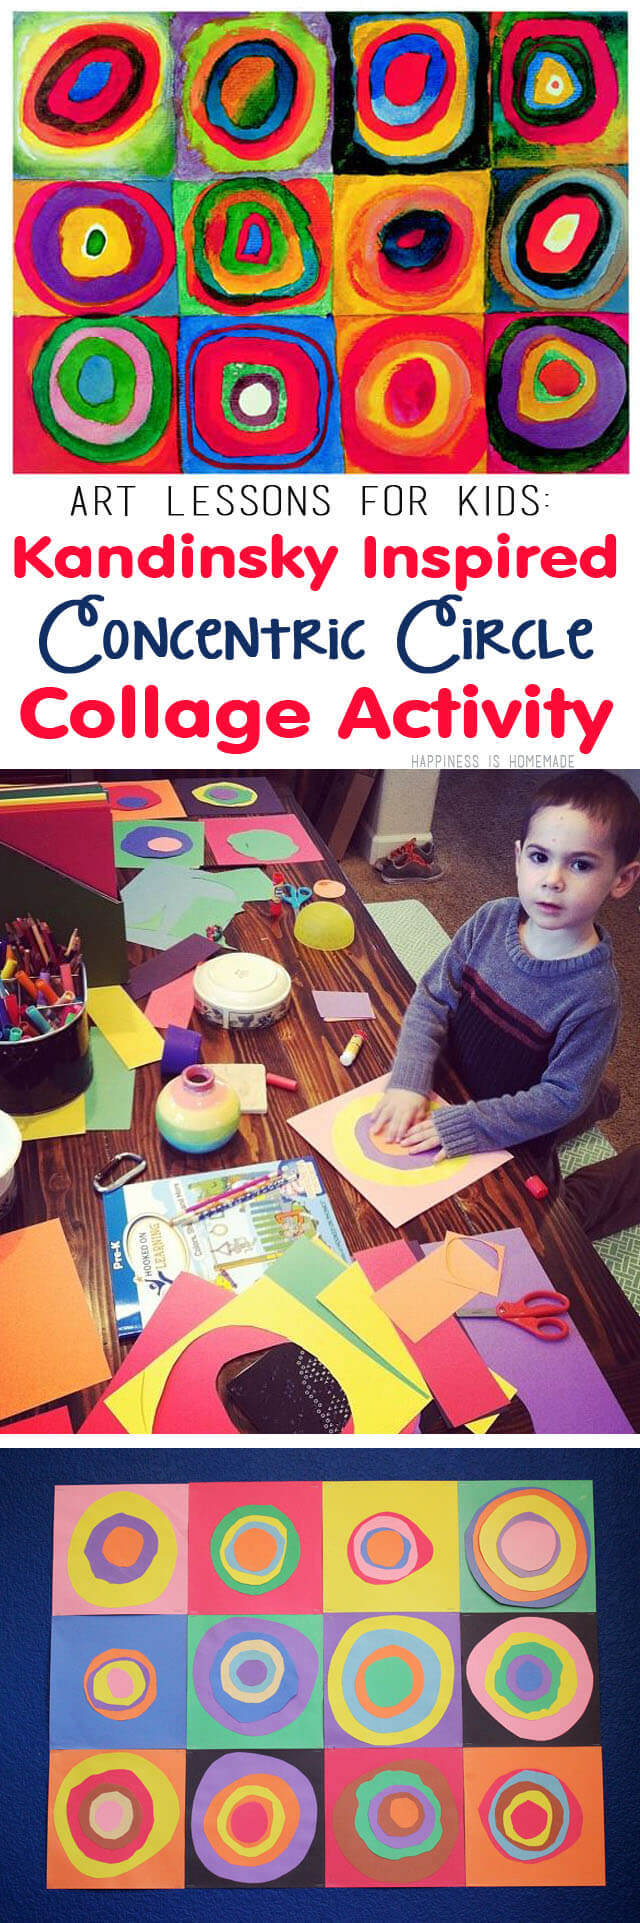 Art Lessons for Kids - Kandinsky Inspired Concentric Circles Collage Activity